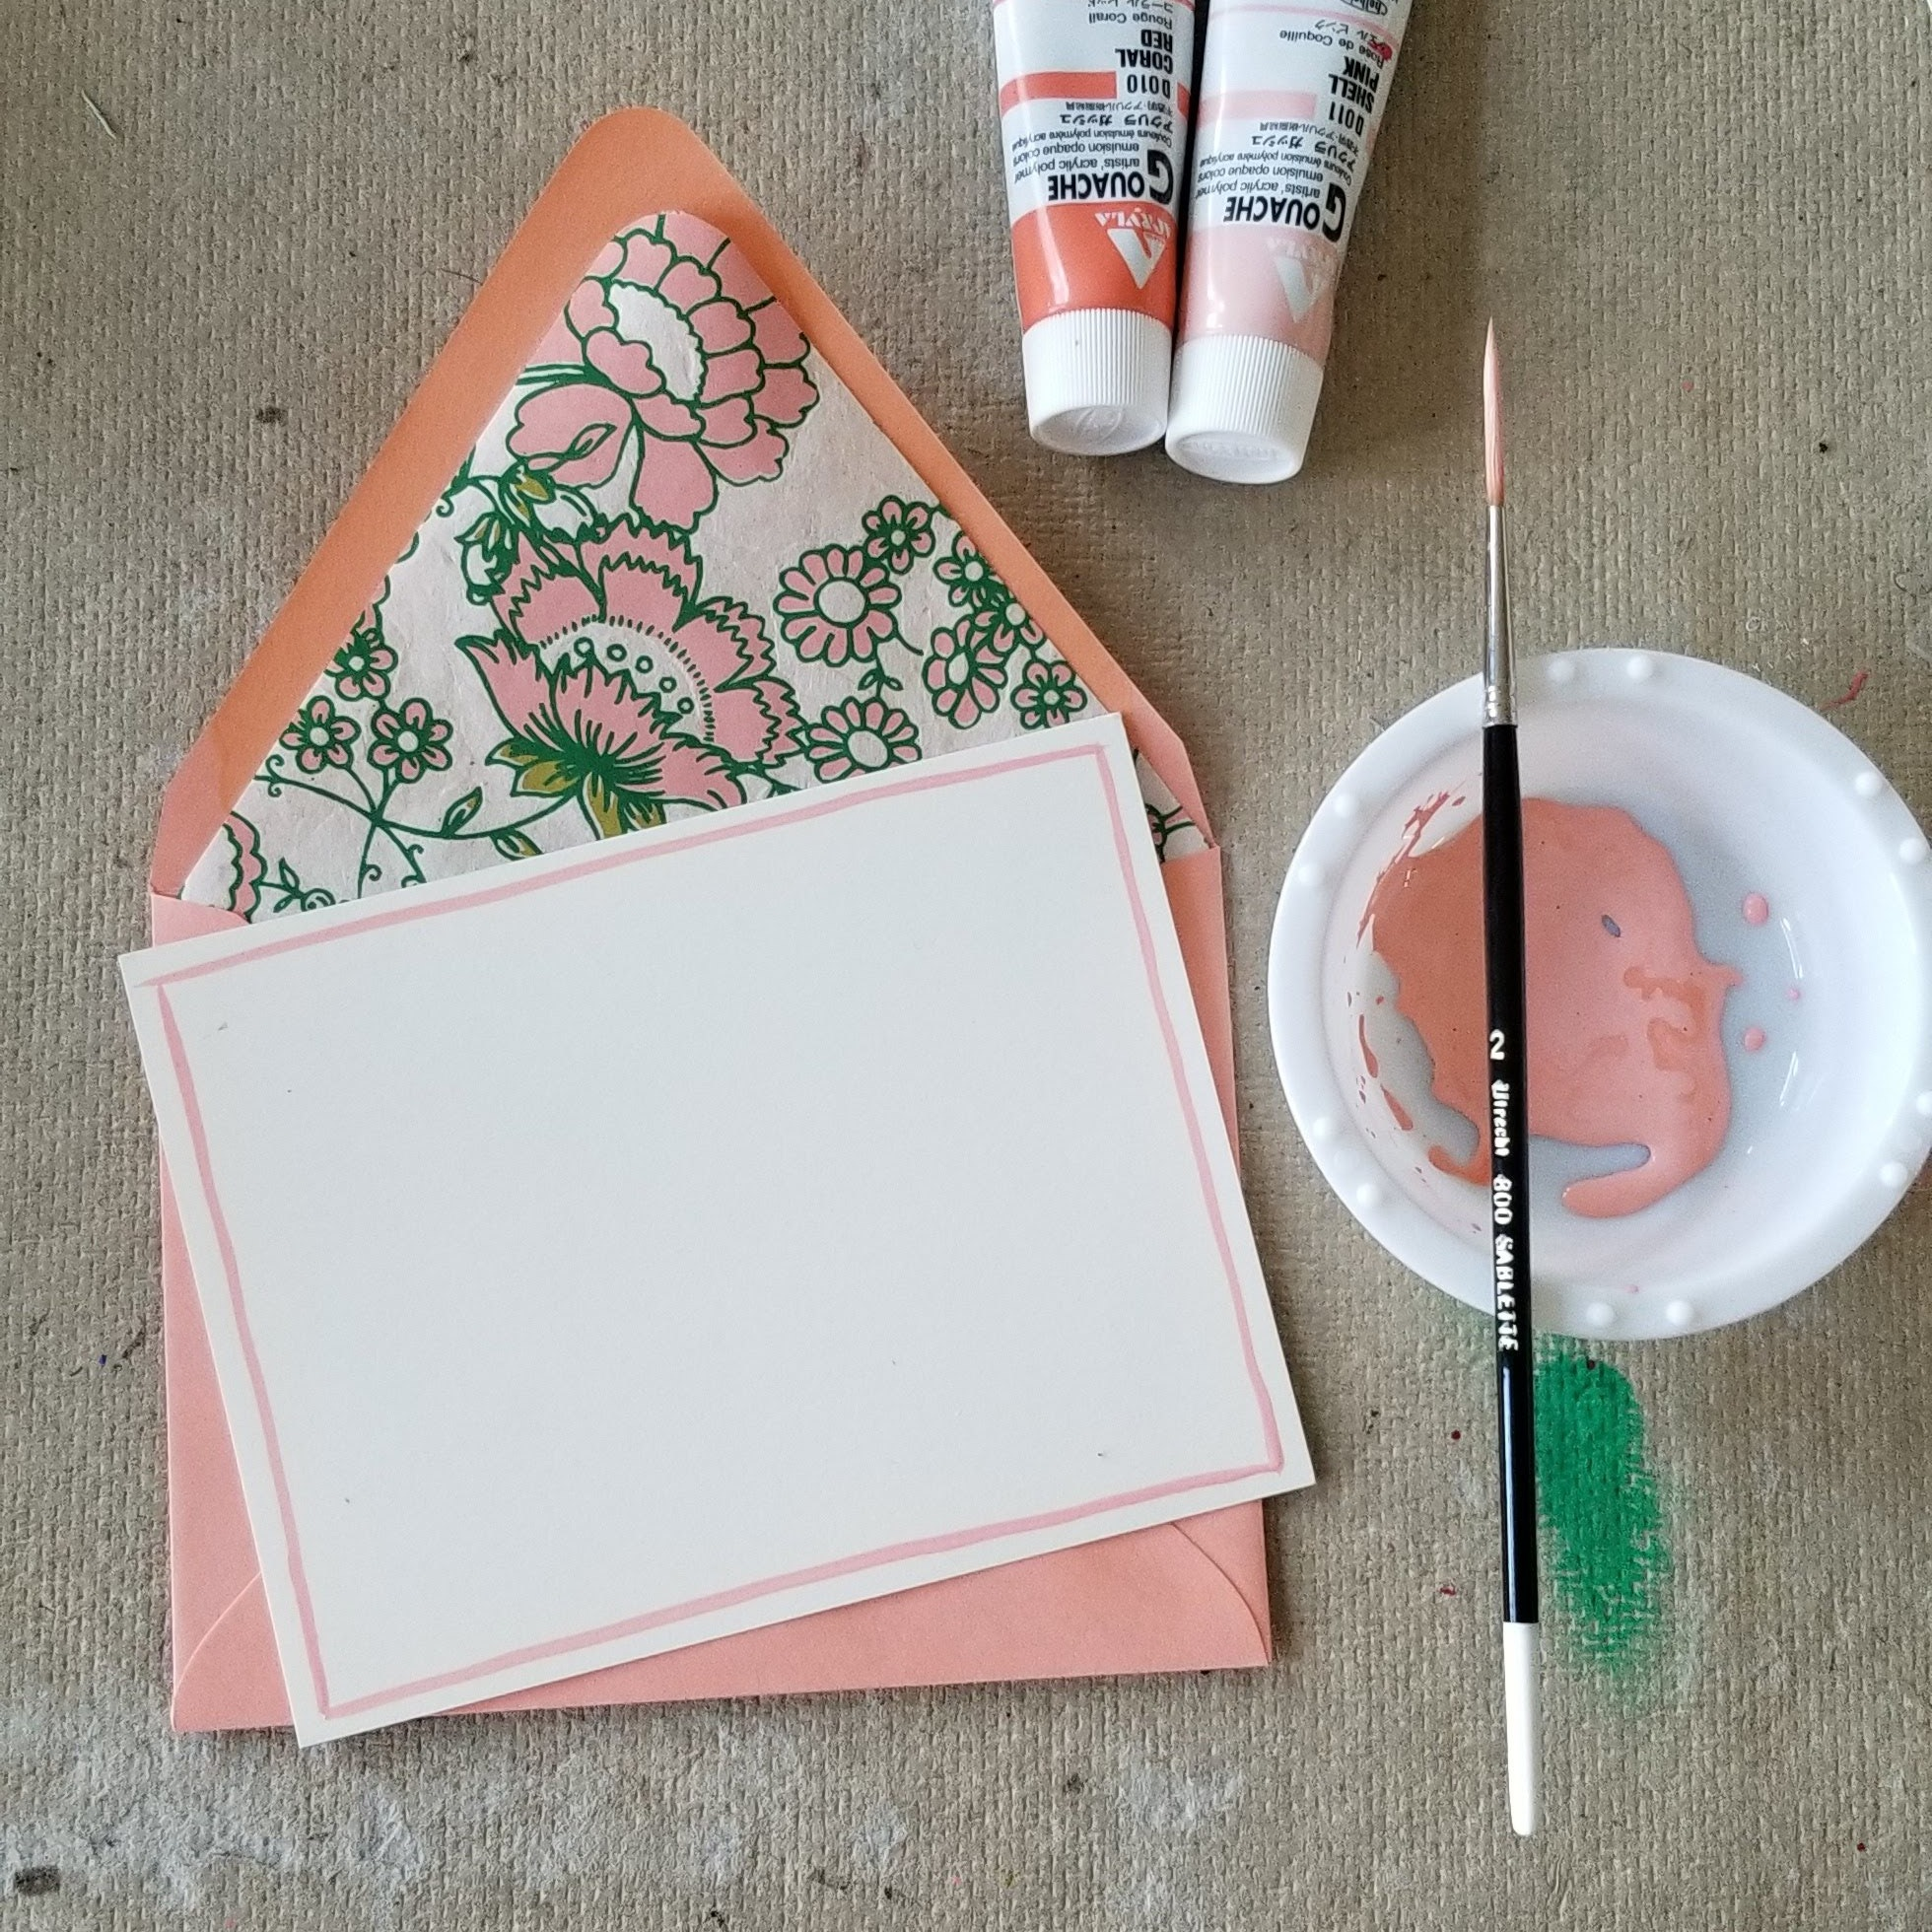 gouache stationery.jpg